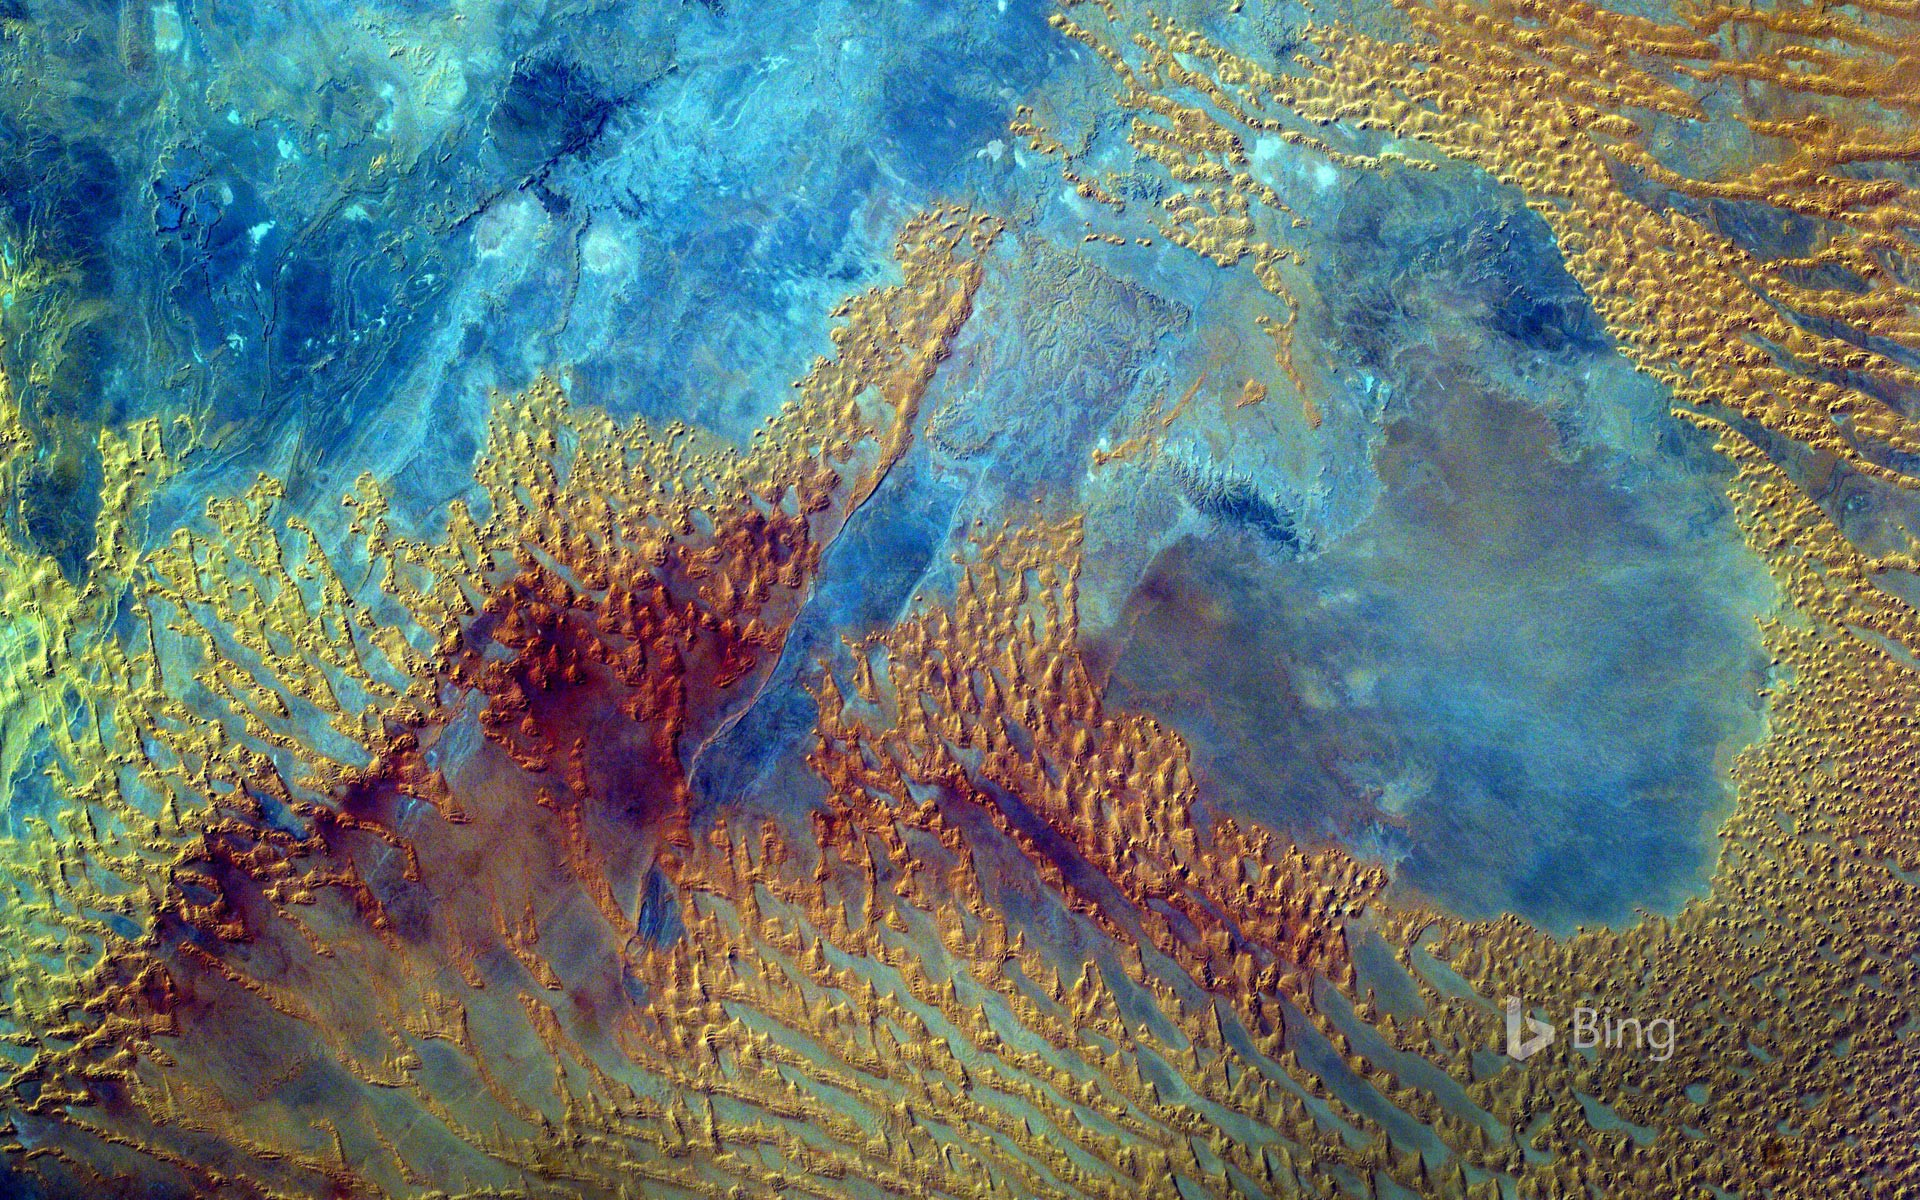 Sahara Desert photographed from the International Space Station by the Sally Ride EarthKAM